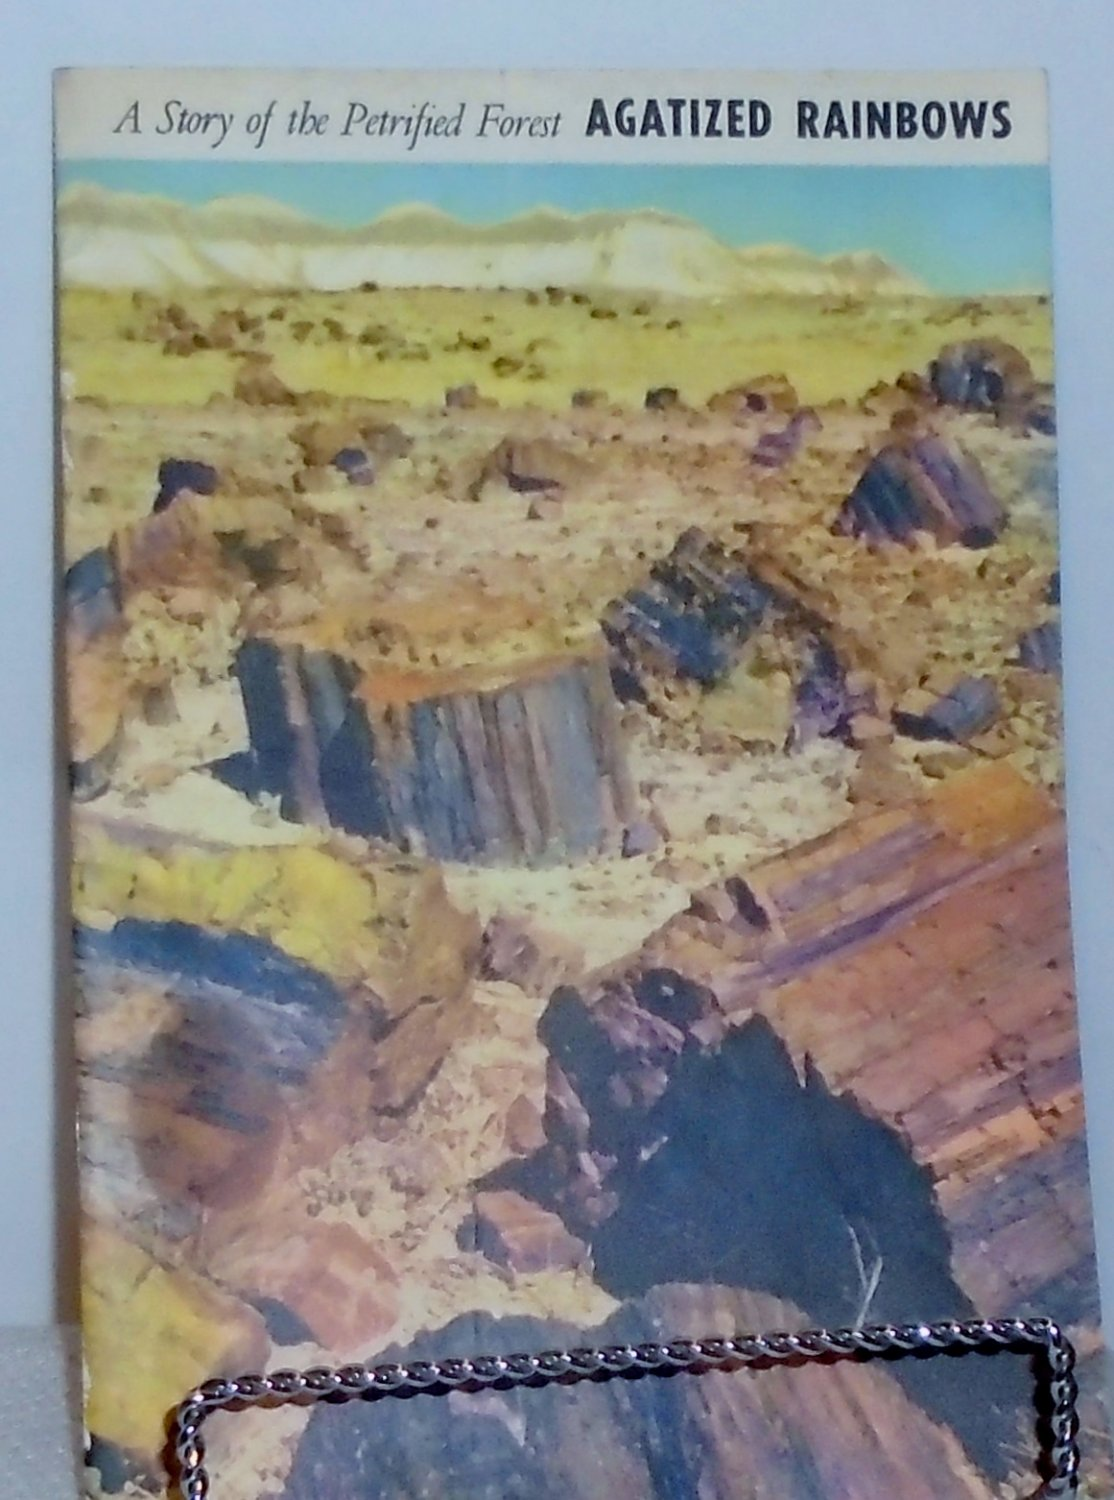 A Story of the Petrified Forest Agatized Rainbows - 1951